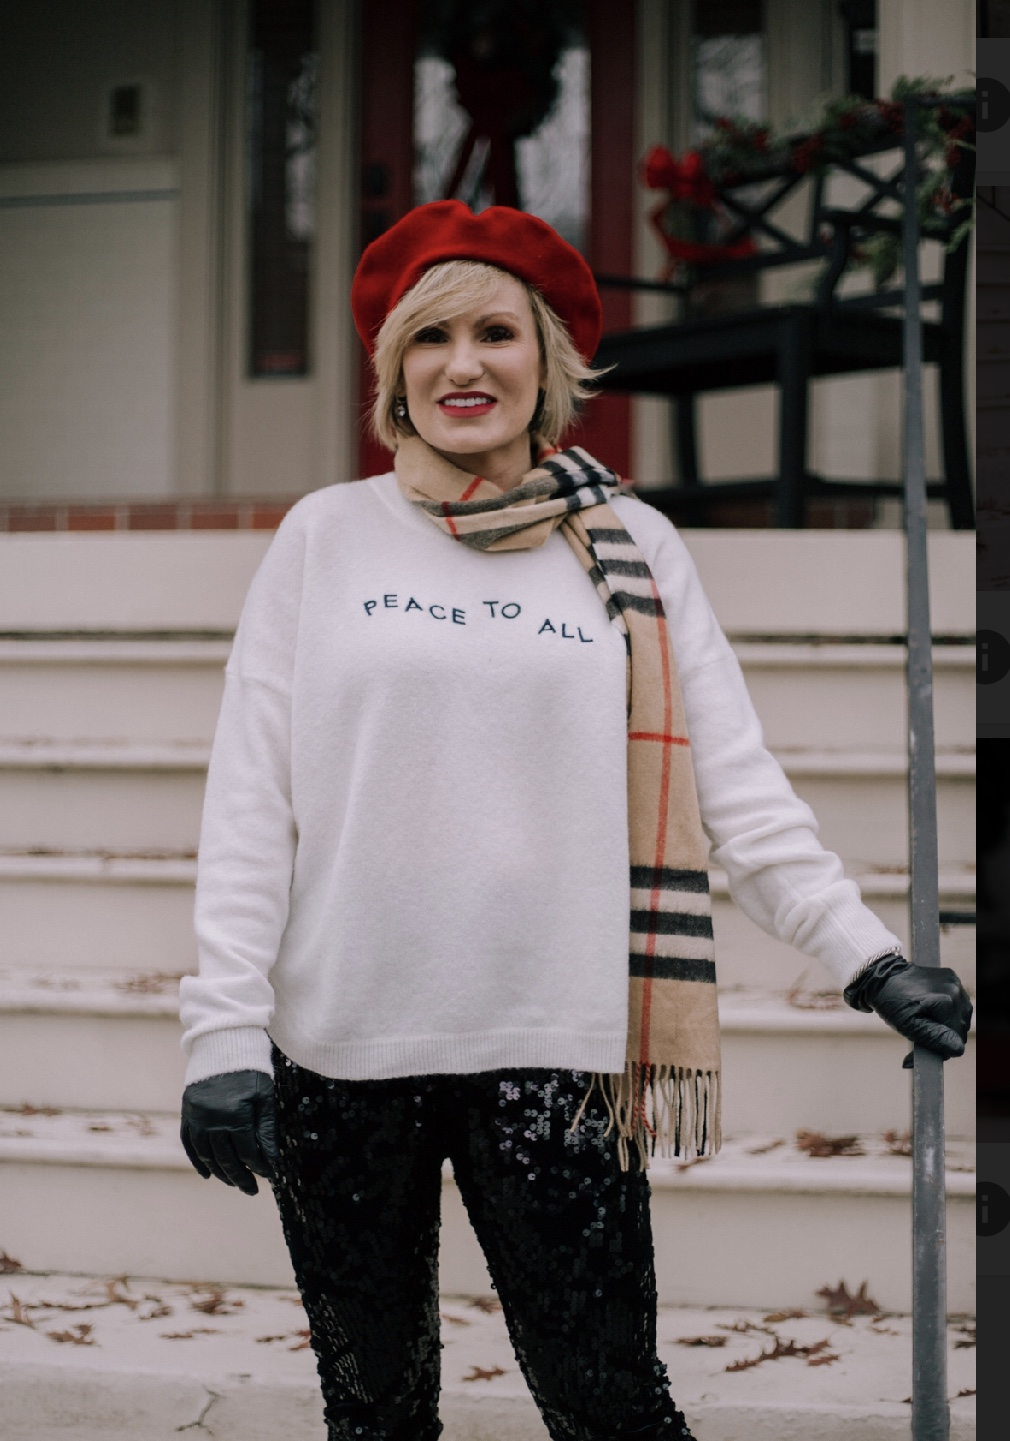 Layered up with a holiday sweater, colorful scarf, gloves and hat for shopping with the girls. Shop this look  here . Merry Christmas, friends xoxo